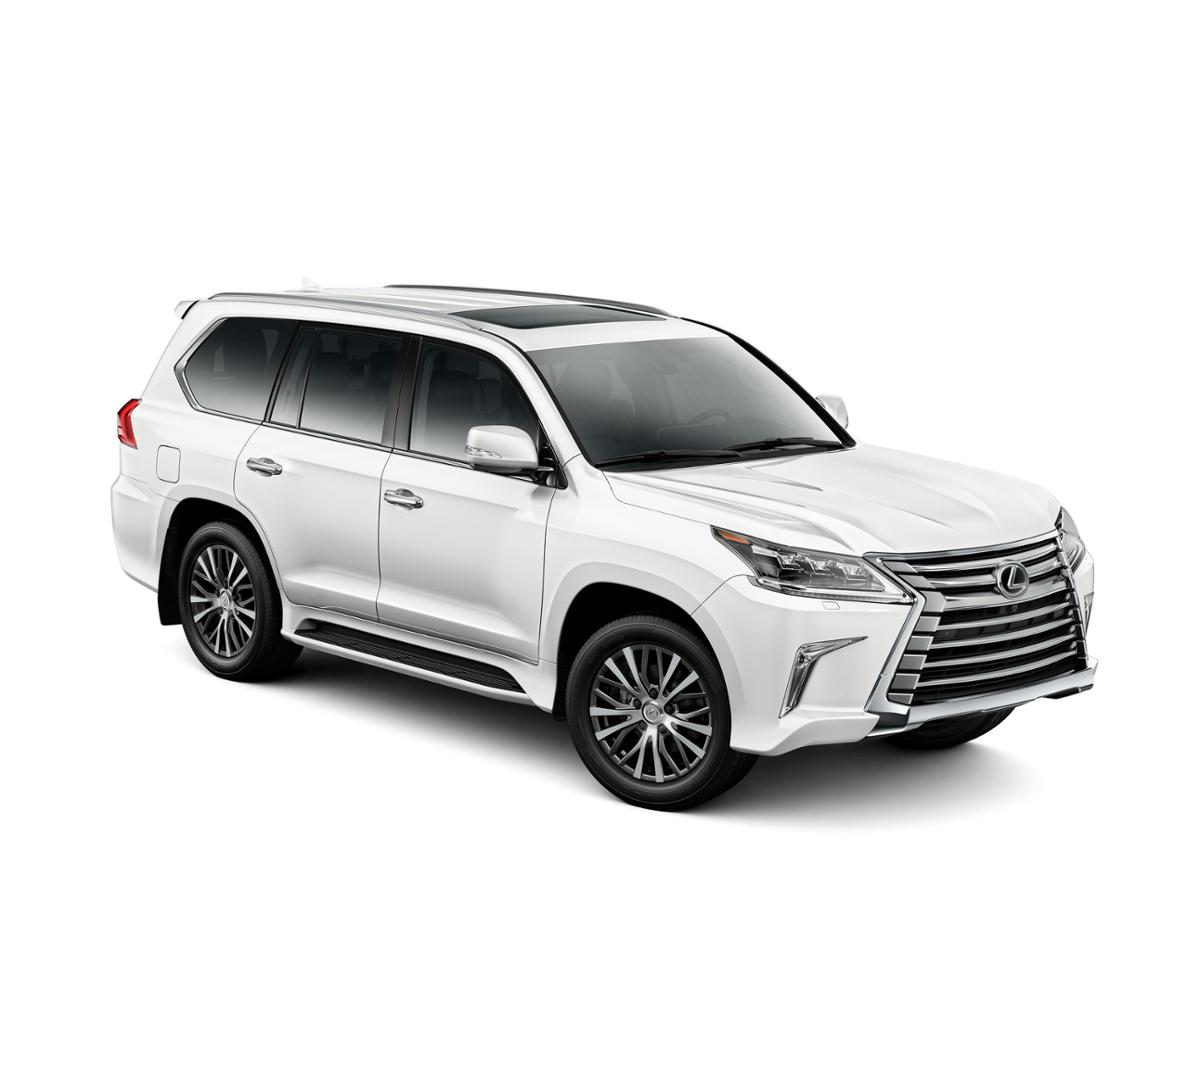 2018 Lexus LX 570 Vehicle Photo in Santa Monica, CA 90404